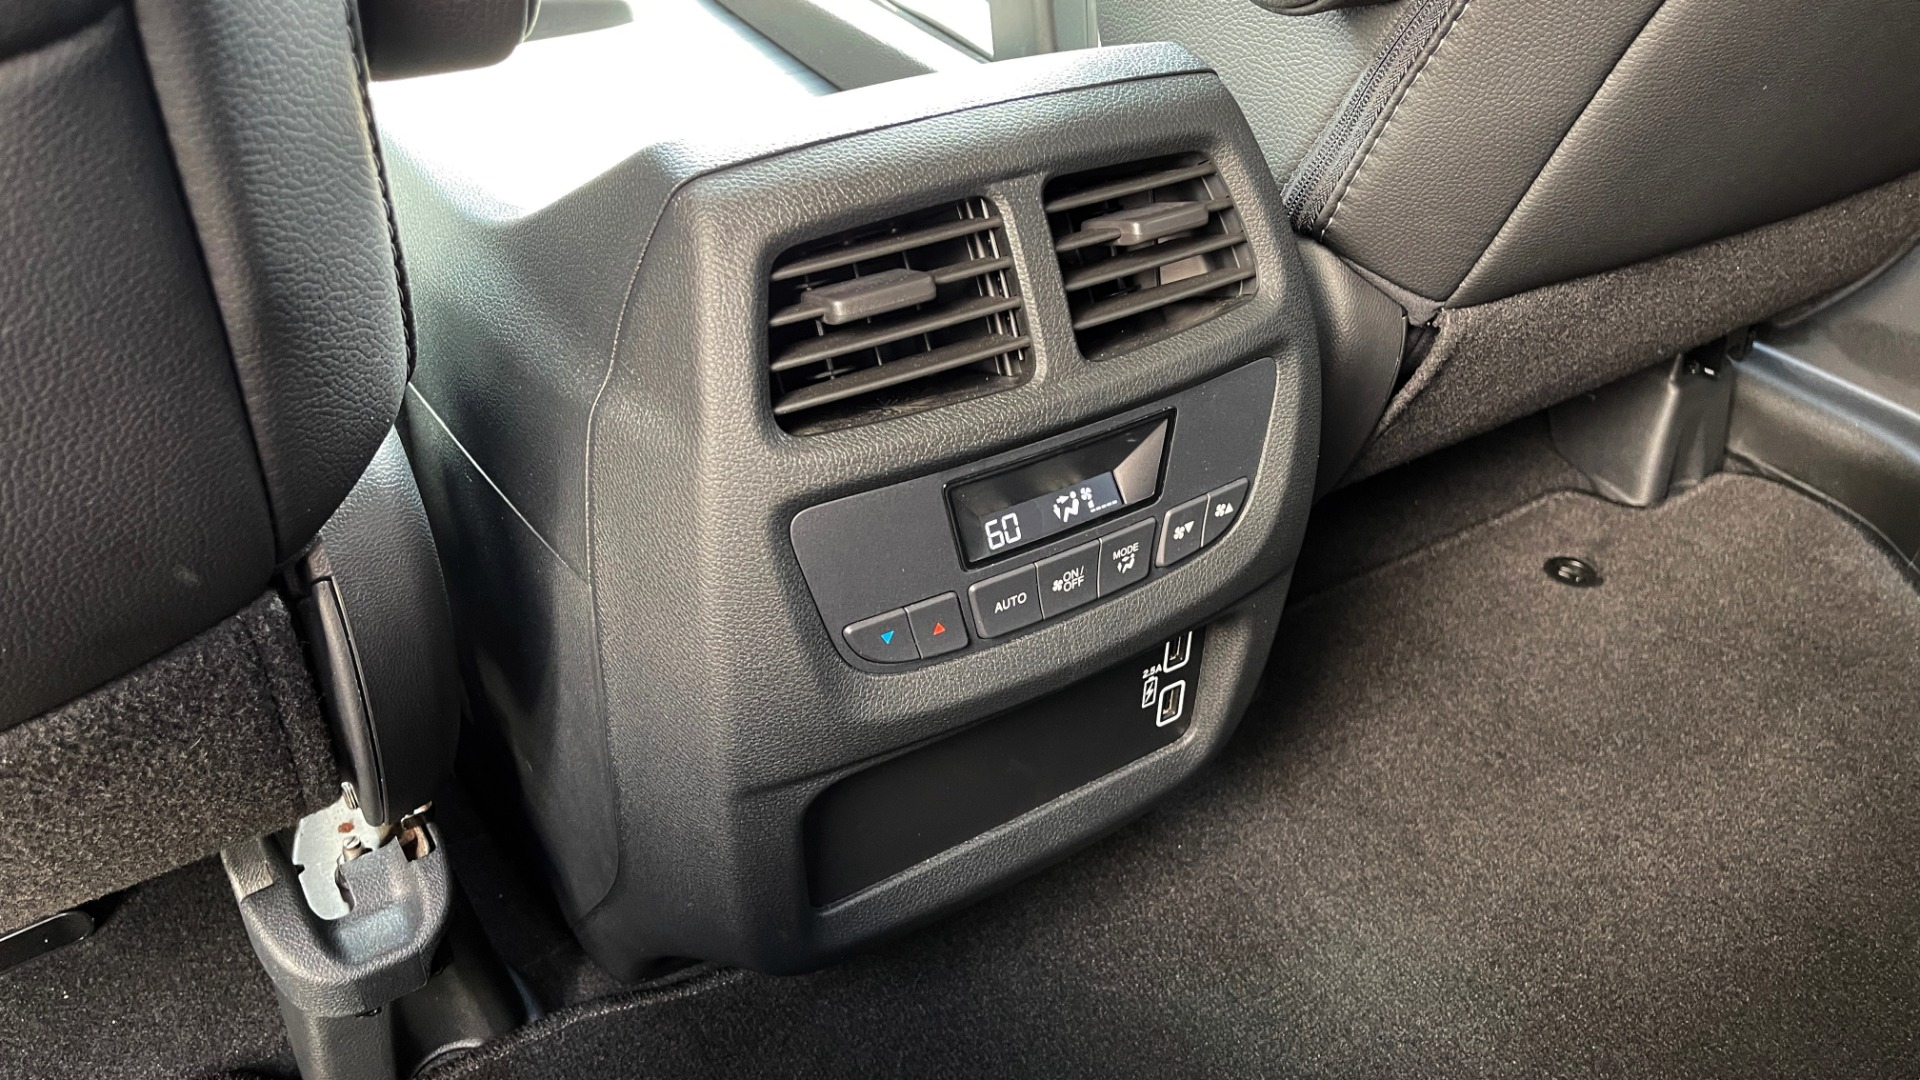 Used 2021 Honda PILOT SE / 3.5L V6 / 9-SPD AUTO / SUNROOF / 3-ROW / REARVIEW for sale $38,795 at Formula Imports in Charlotte NC 28227 54